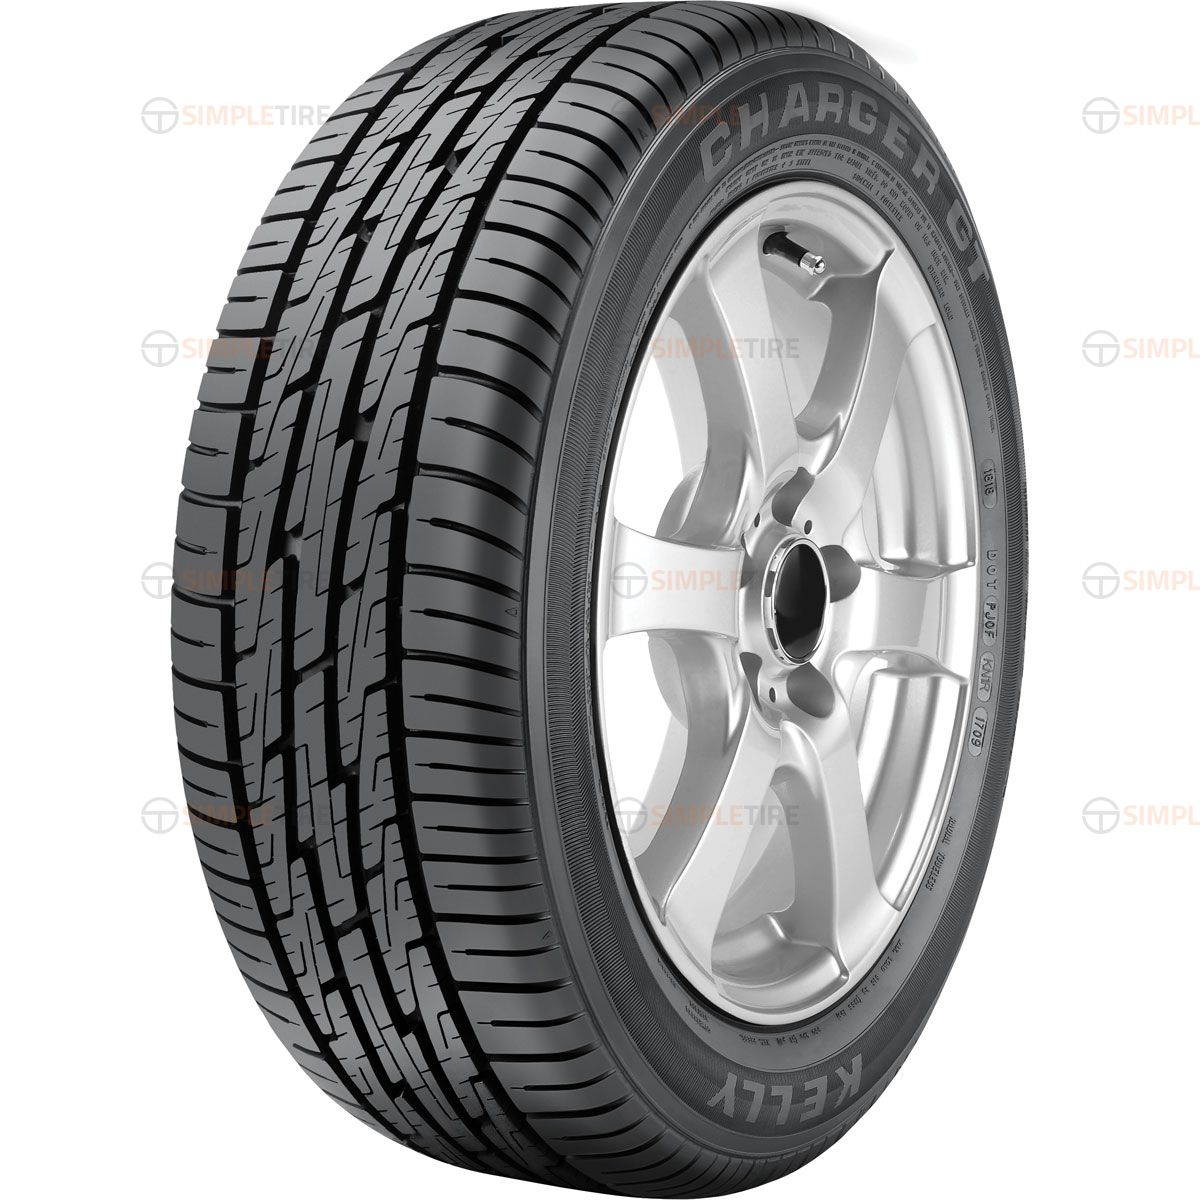 Kelly Charger P195/70R-14 356019009